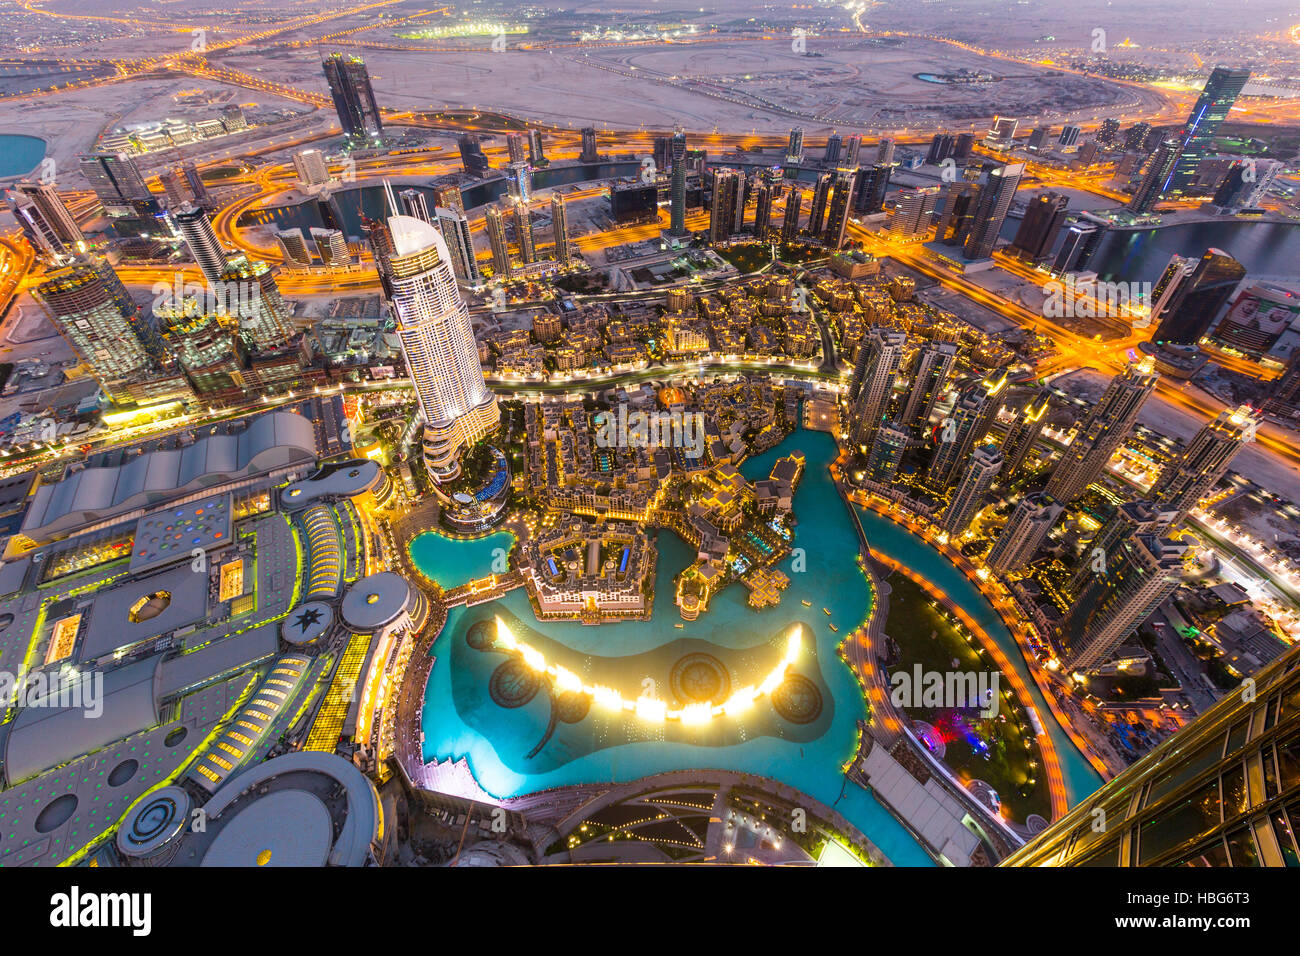 View From Burj Khalifa Observation Deck Dubai Fountain